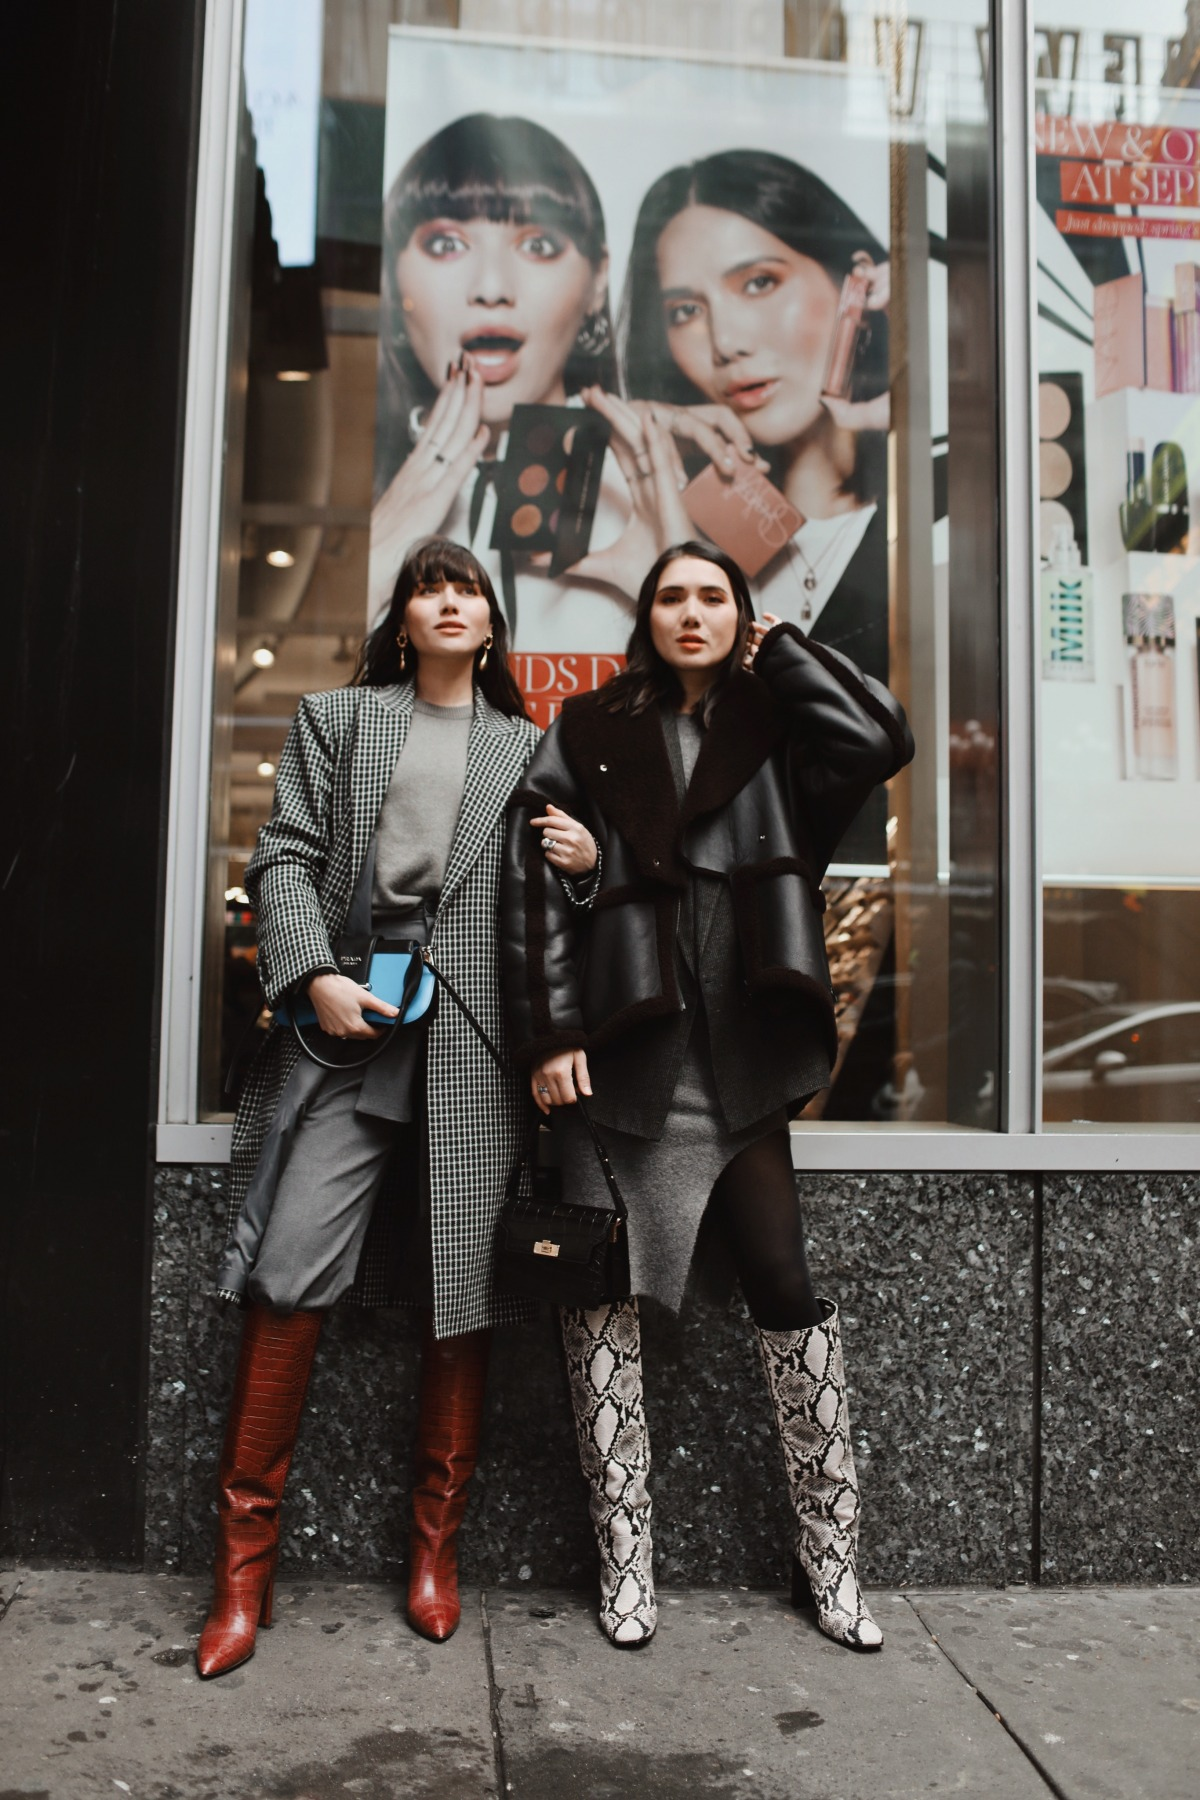 SUAREZ SISTERS FOR SEPHORA – WE'RE IN TIMES SQUARE!